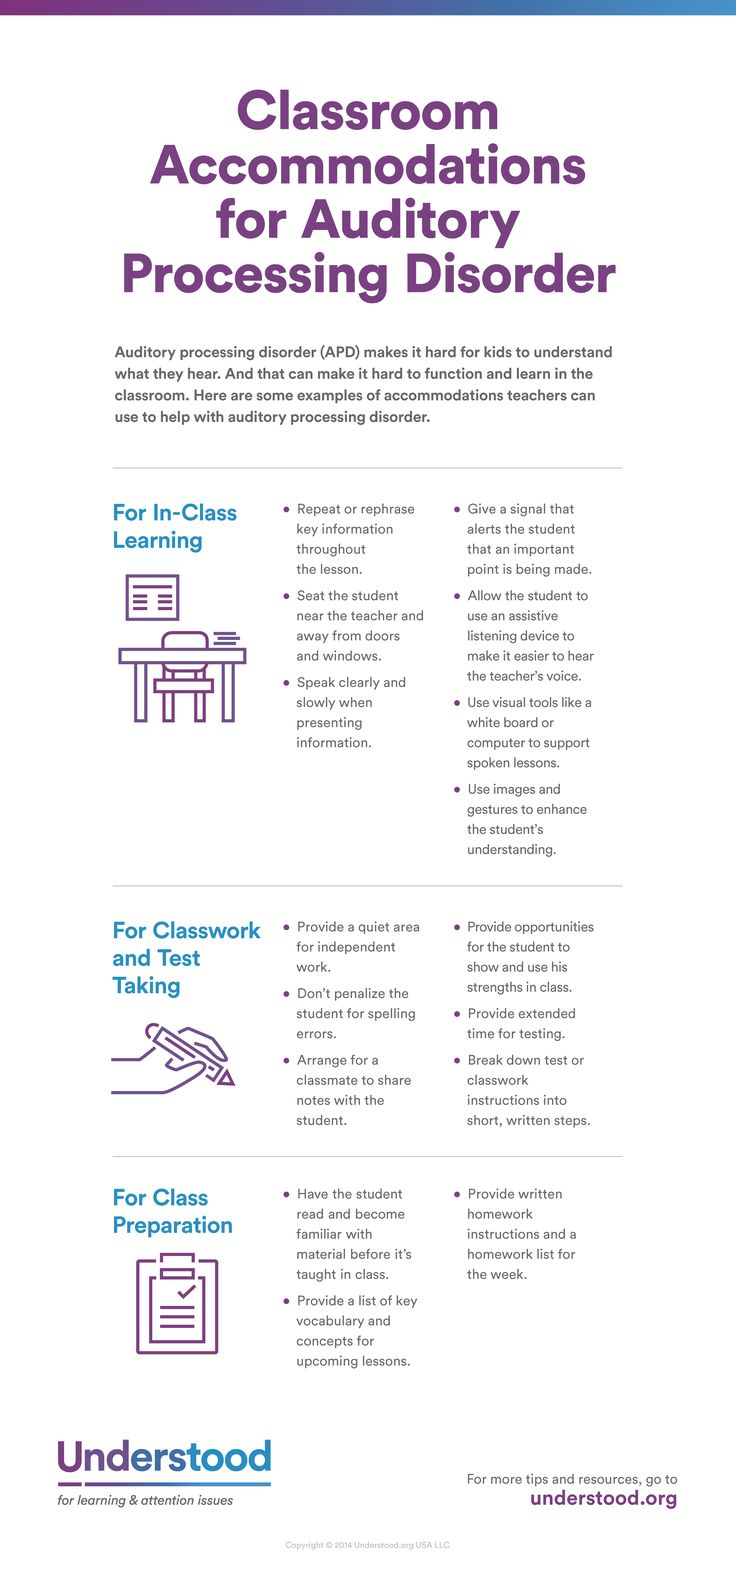 Worksheets Auditory Comprehension Worksheets best 25 auditory processing ideas on pinterest accommodations for students with disorder understood